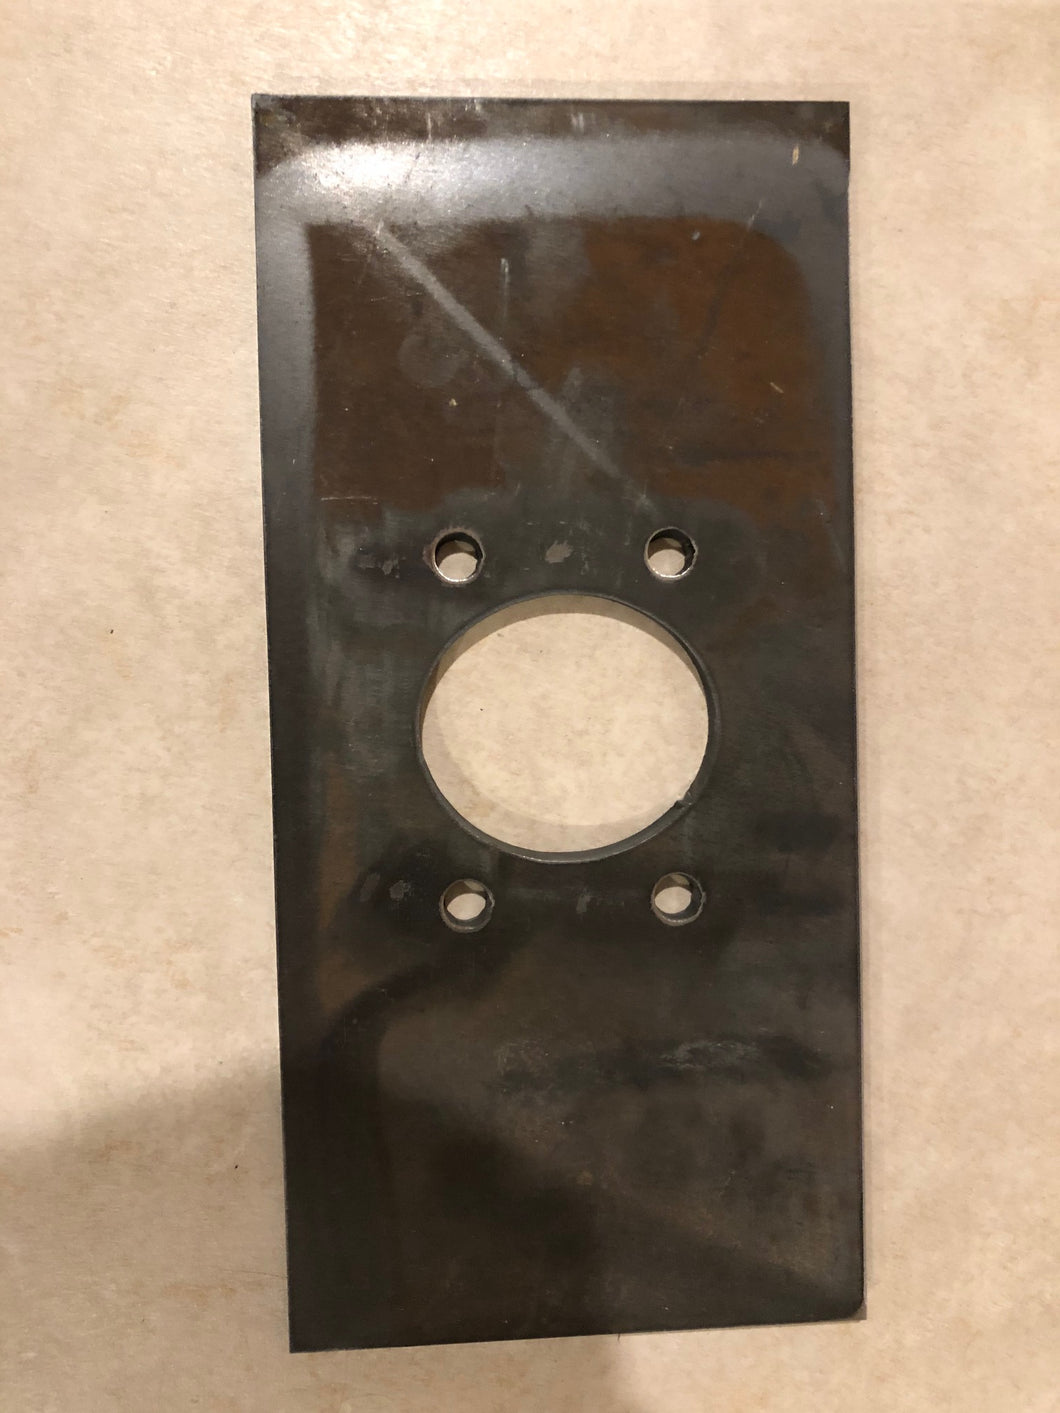 EZGO 4 bolt steering conversion plate